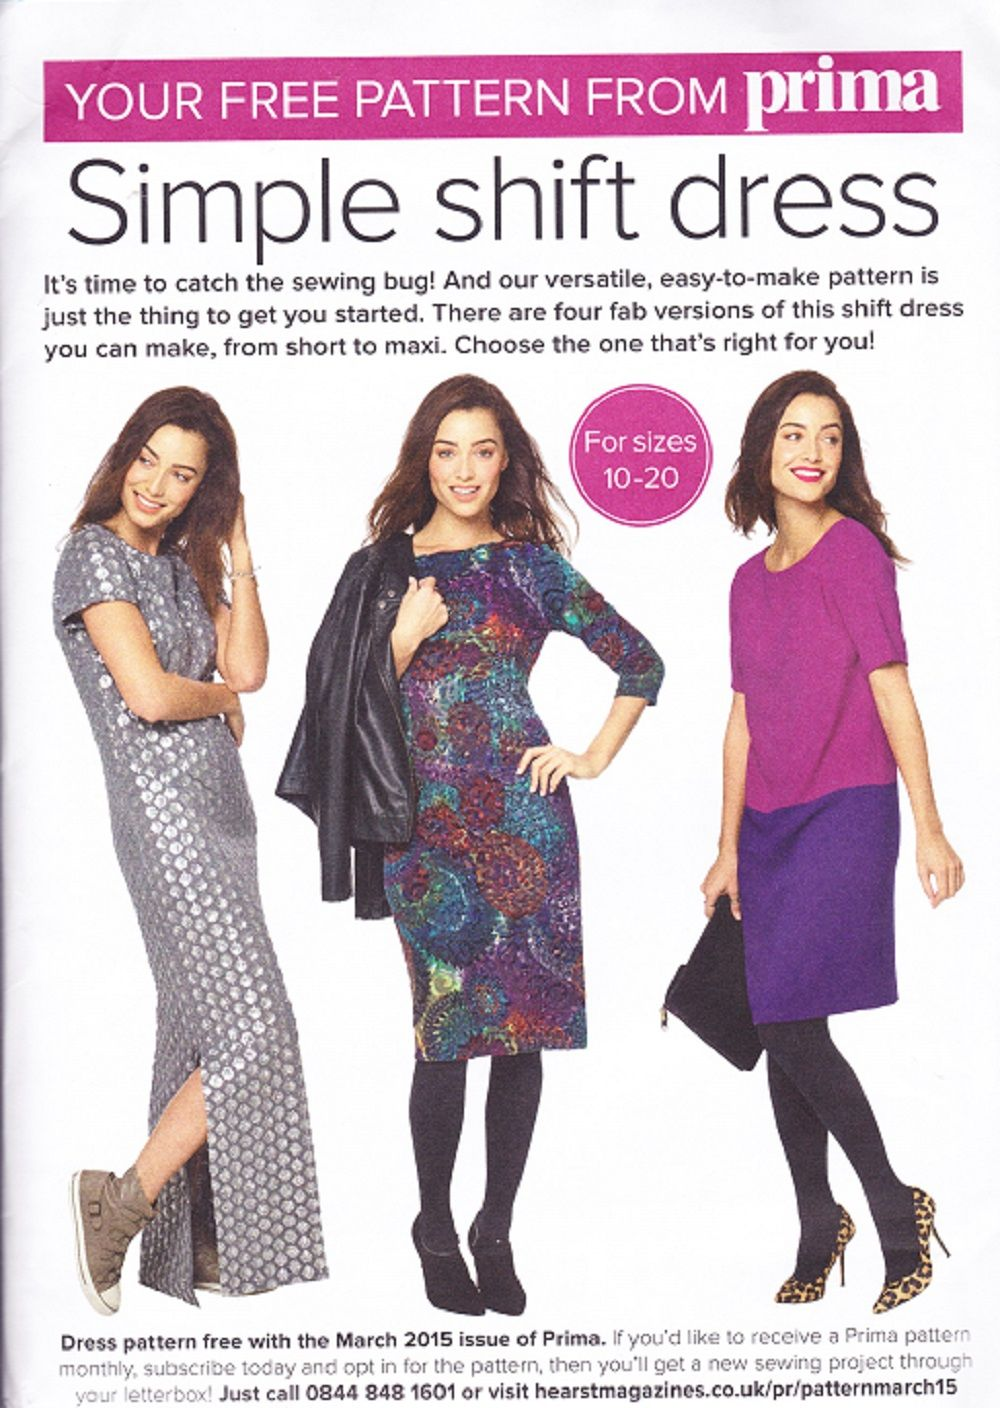 Prima sewing pattern march 2015 ladys simple shift dress prima sewing pattern march 2015 ladys simple shift dress ombrellifo Gallery